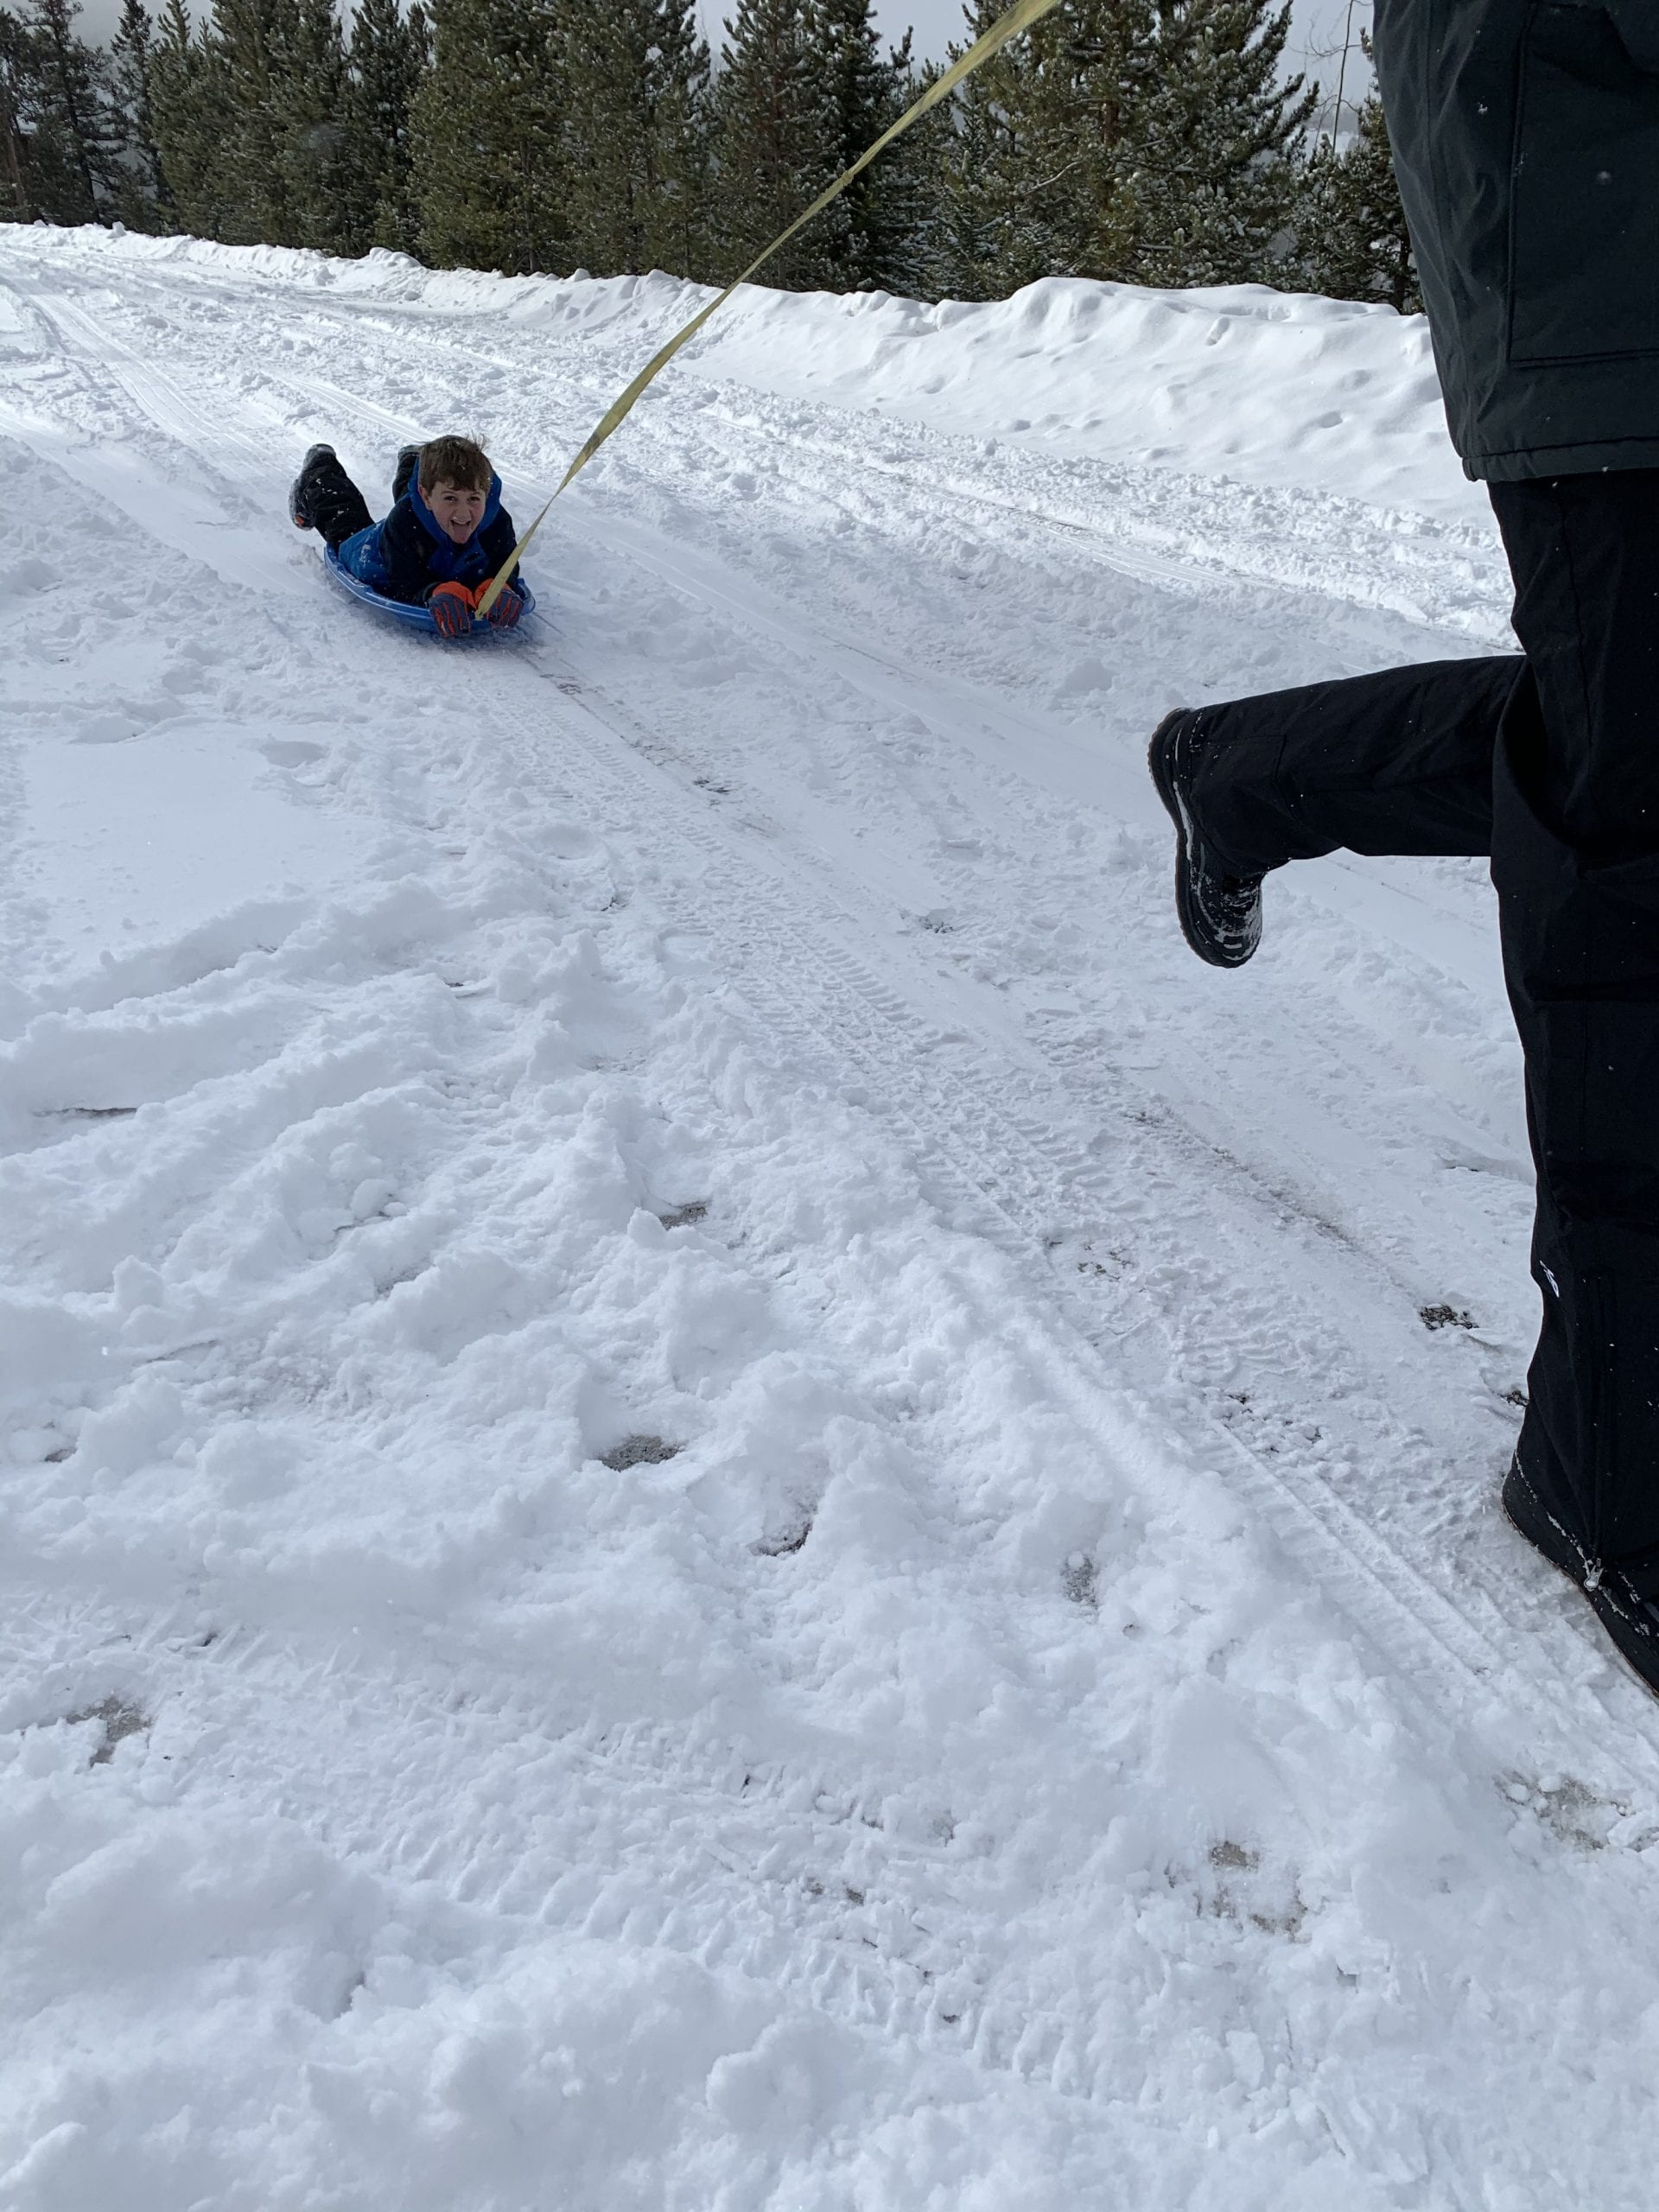 child sledding down mountain in Colorado